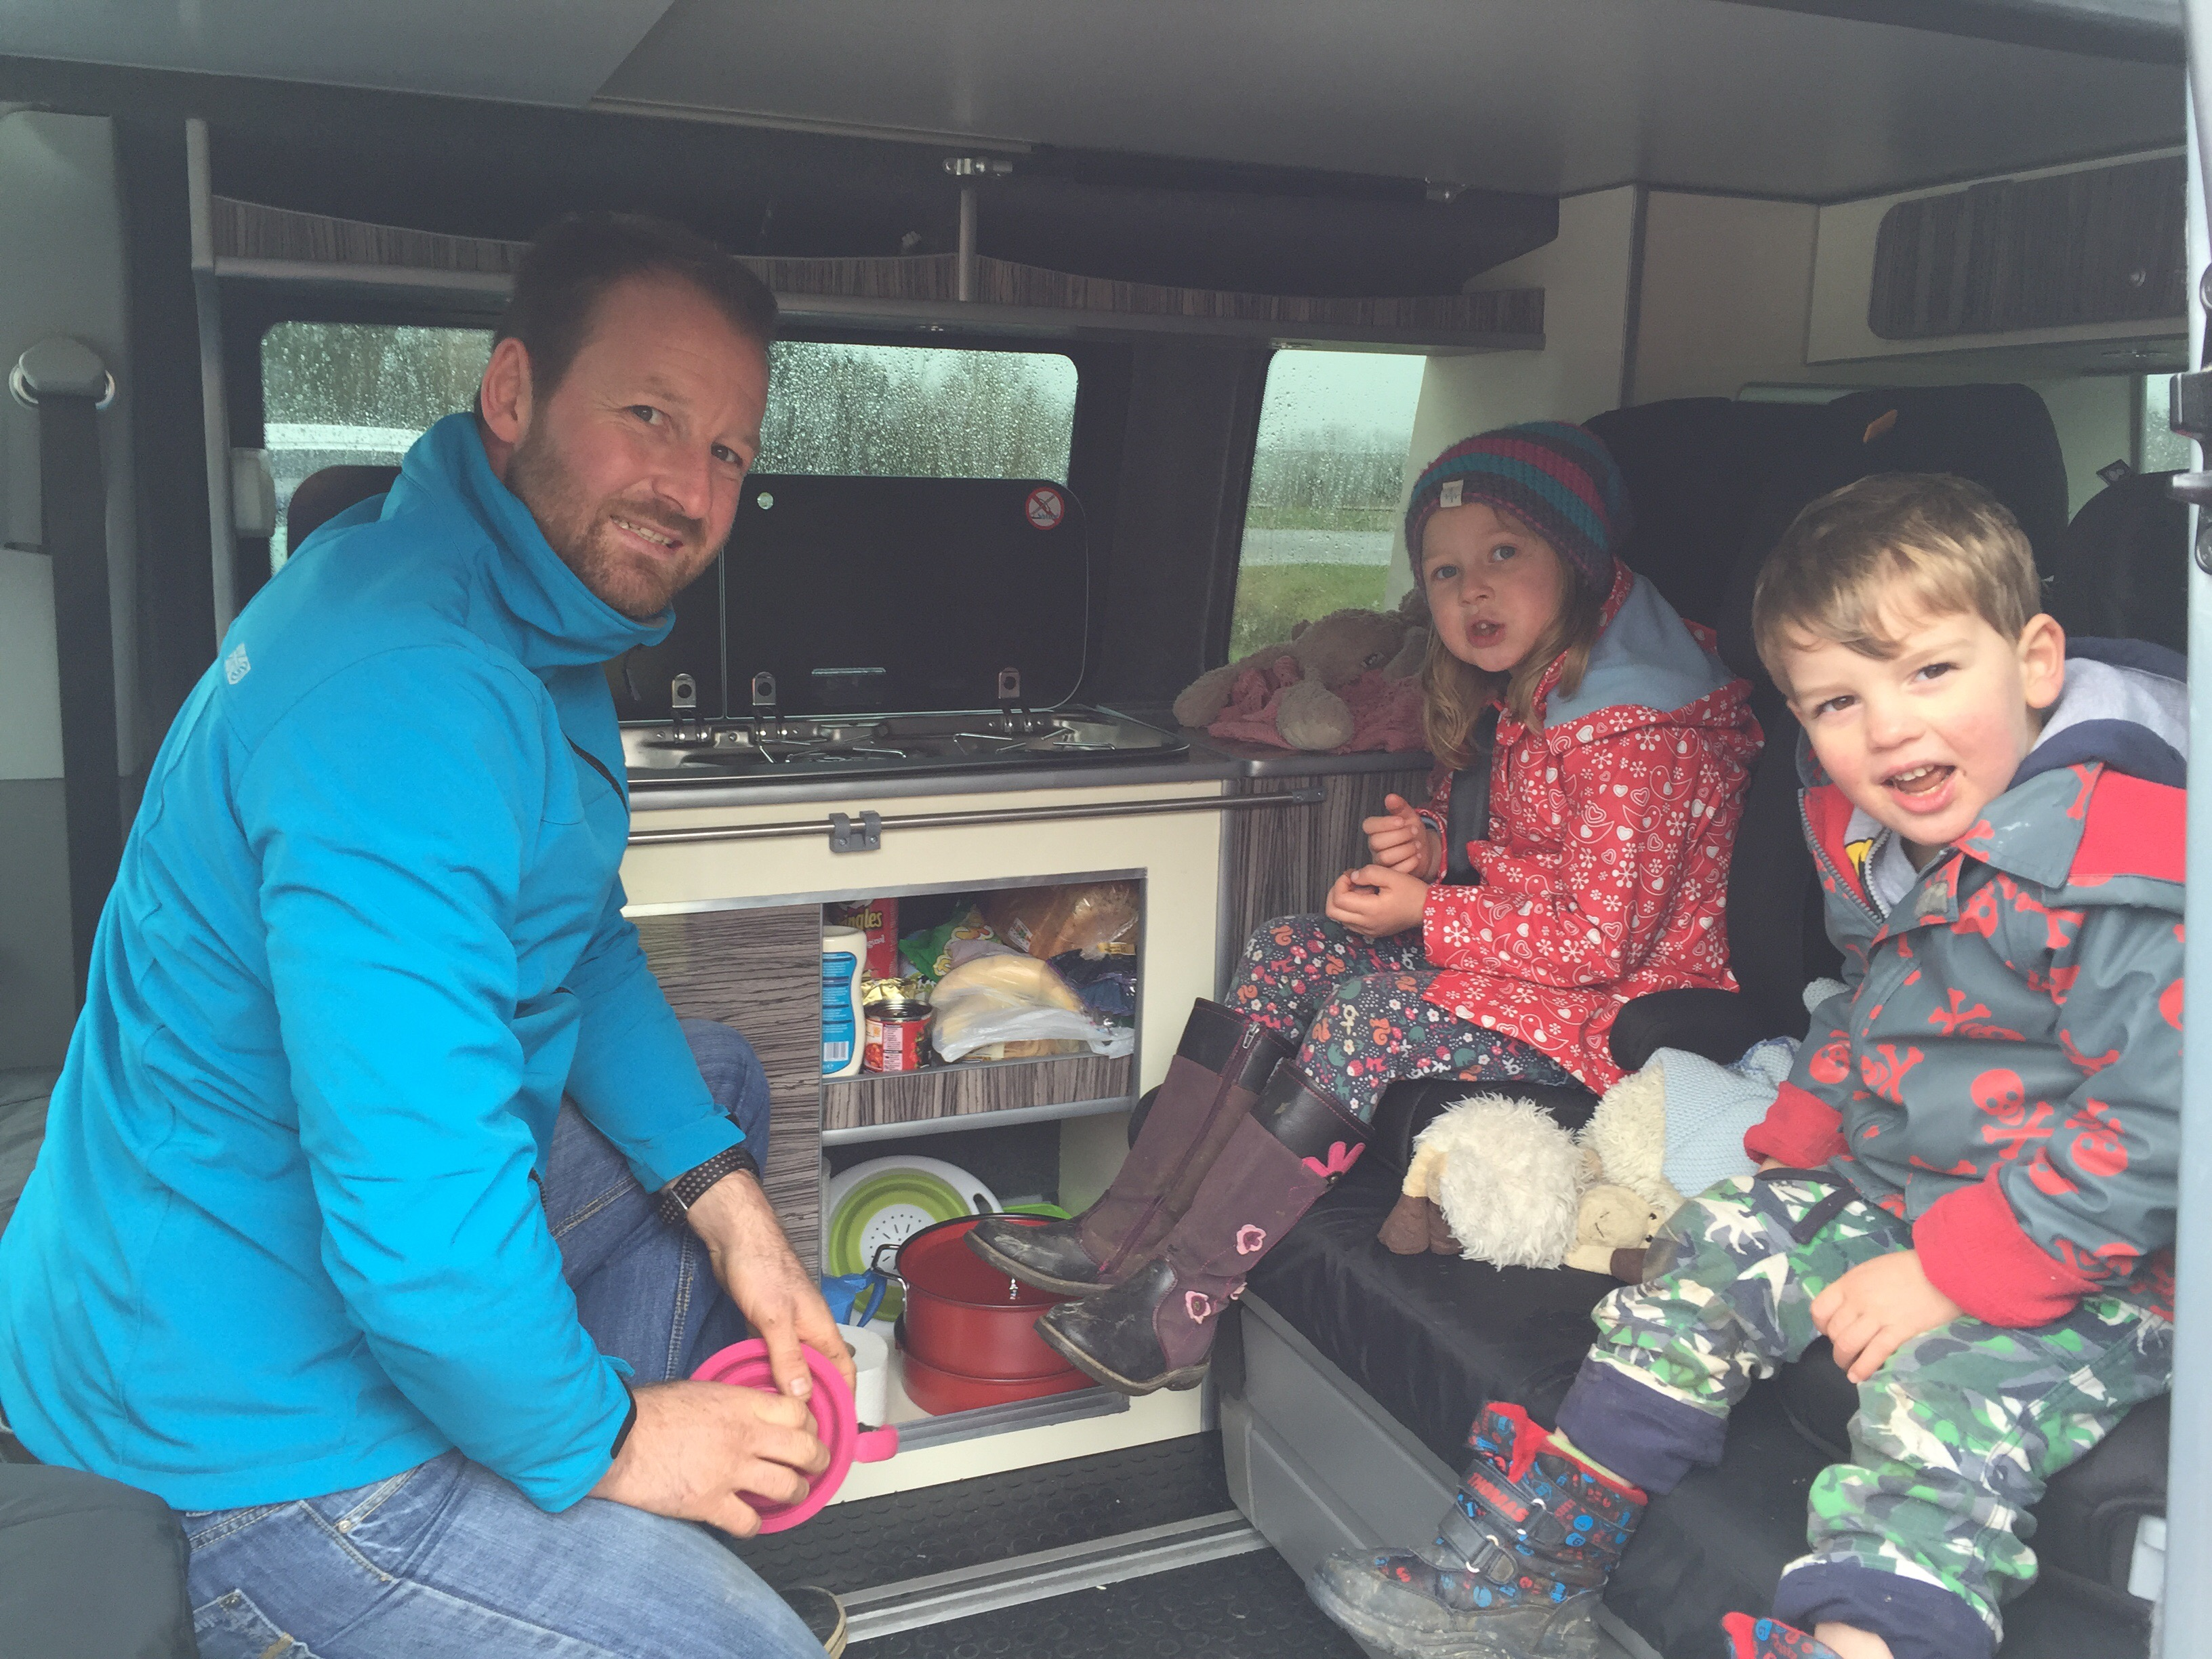 On one of our campervan travel trips, Dave and the kids sitting in the kitchen area of the van, all looking and smiling as he gets the kettle out ready to put on the hob and make a cup of tea.